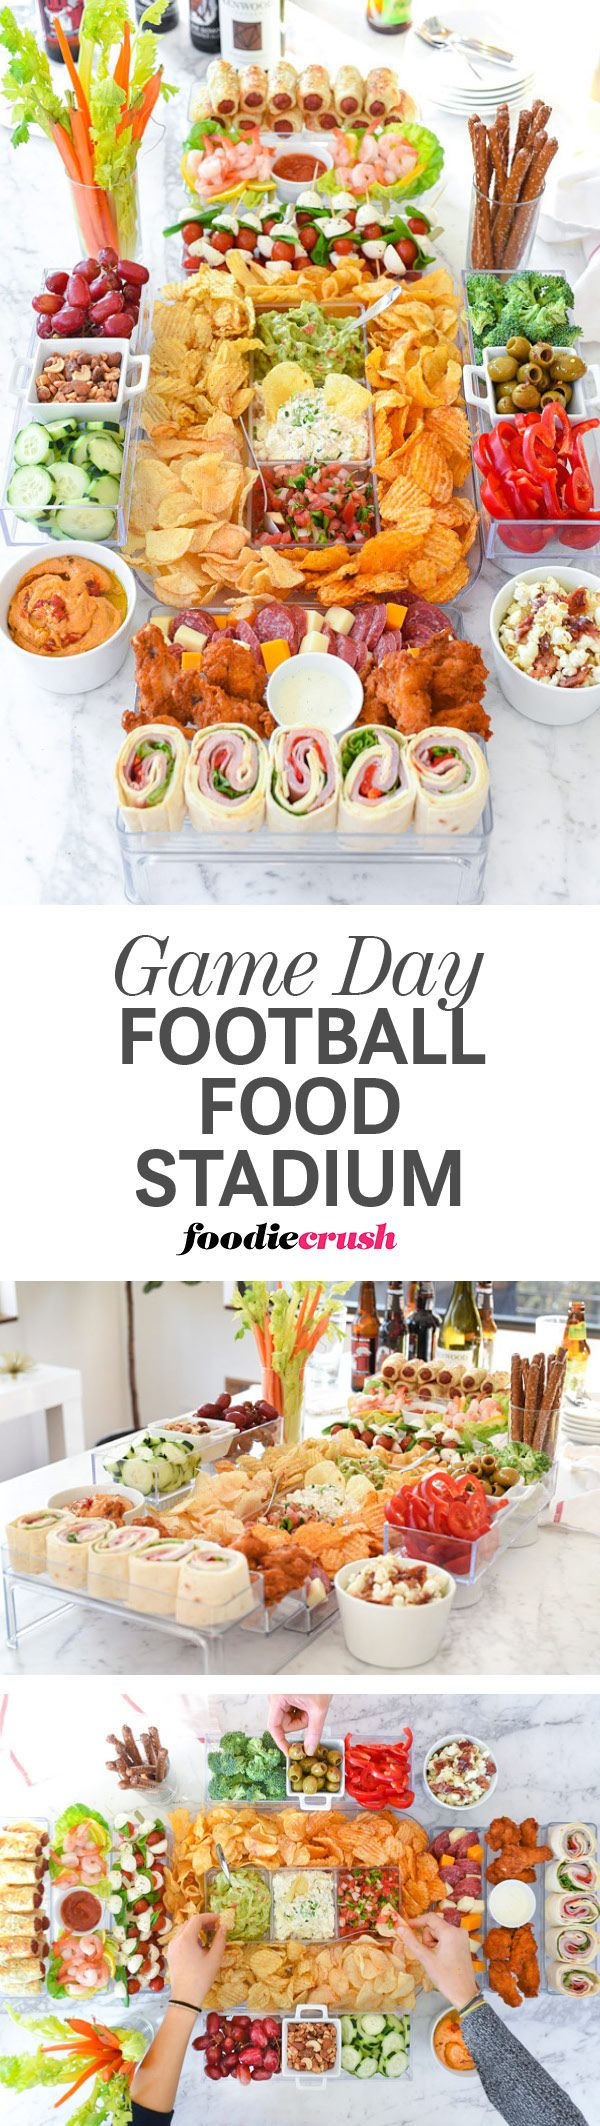 How to Build a Game Day Football Food Stadium and 20 Recipe Ideas to Fill It With | foodiecrush.com